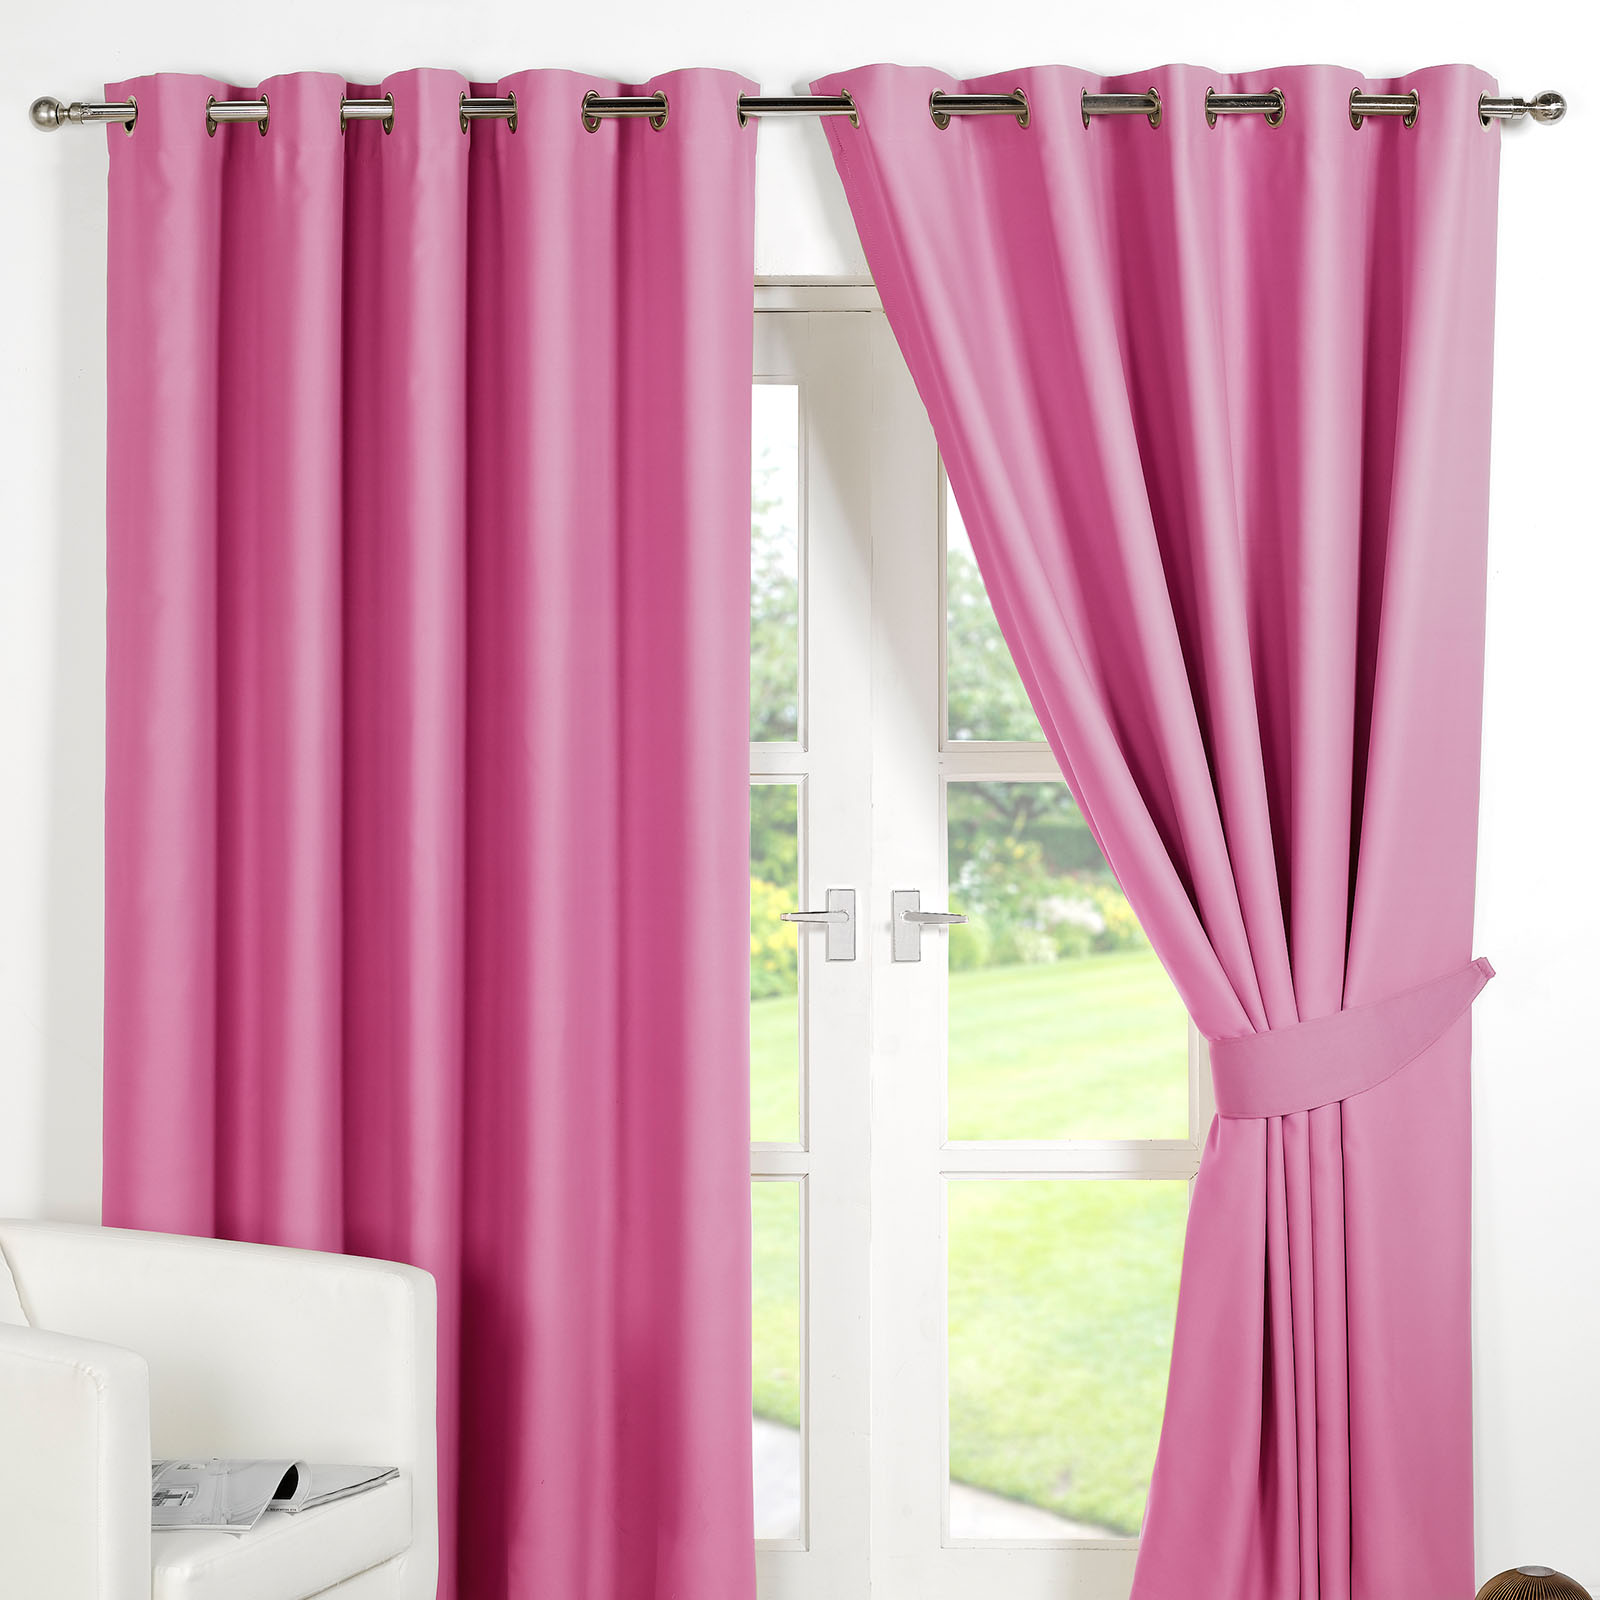 ring top fully lined pair eyelet ready made curtains. Black Bedroom Furniture Sets. Home Design Ideas